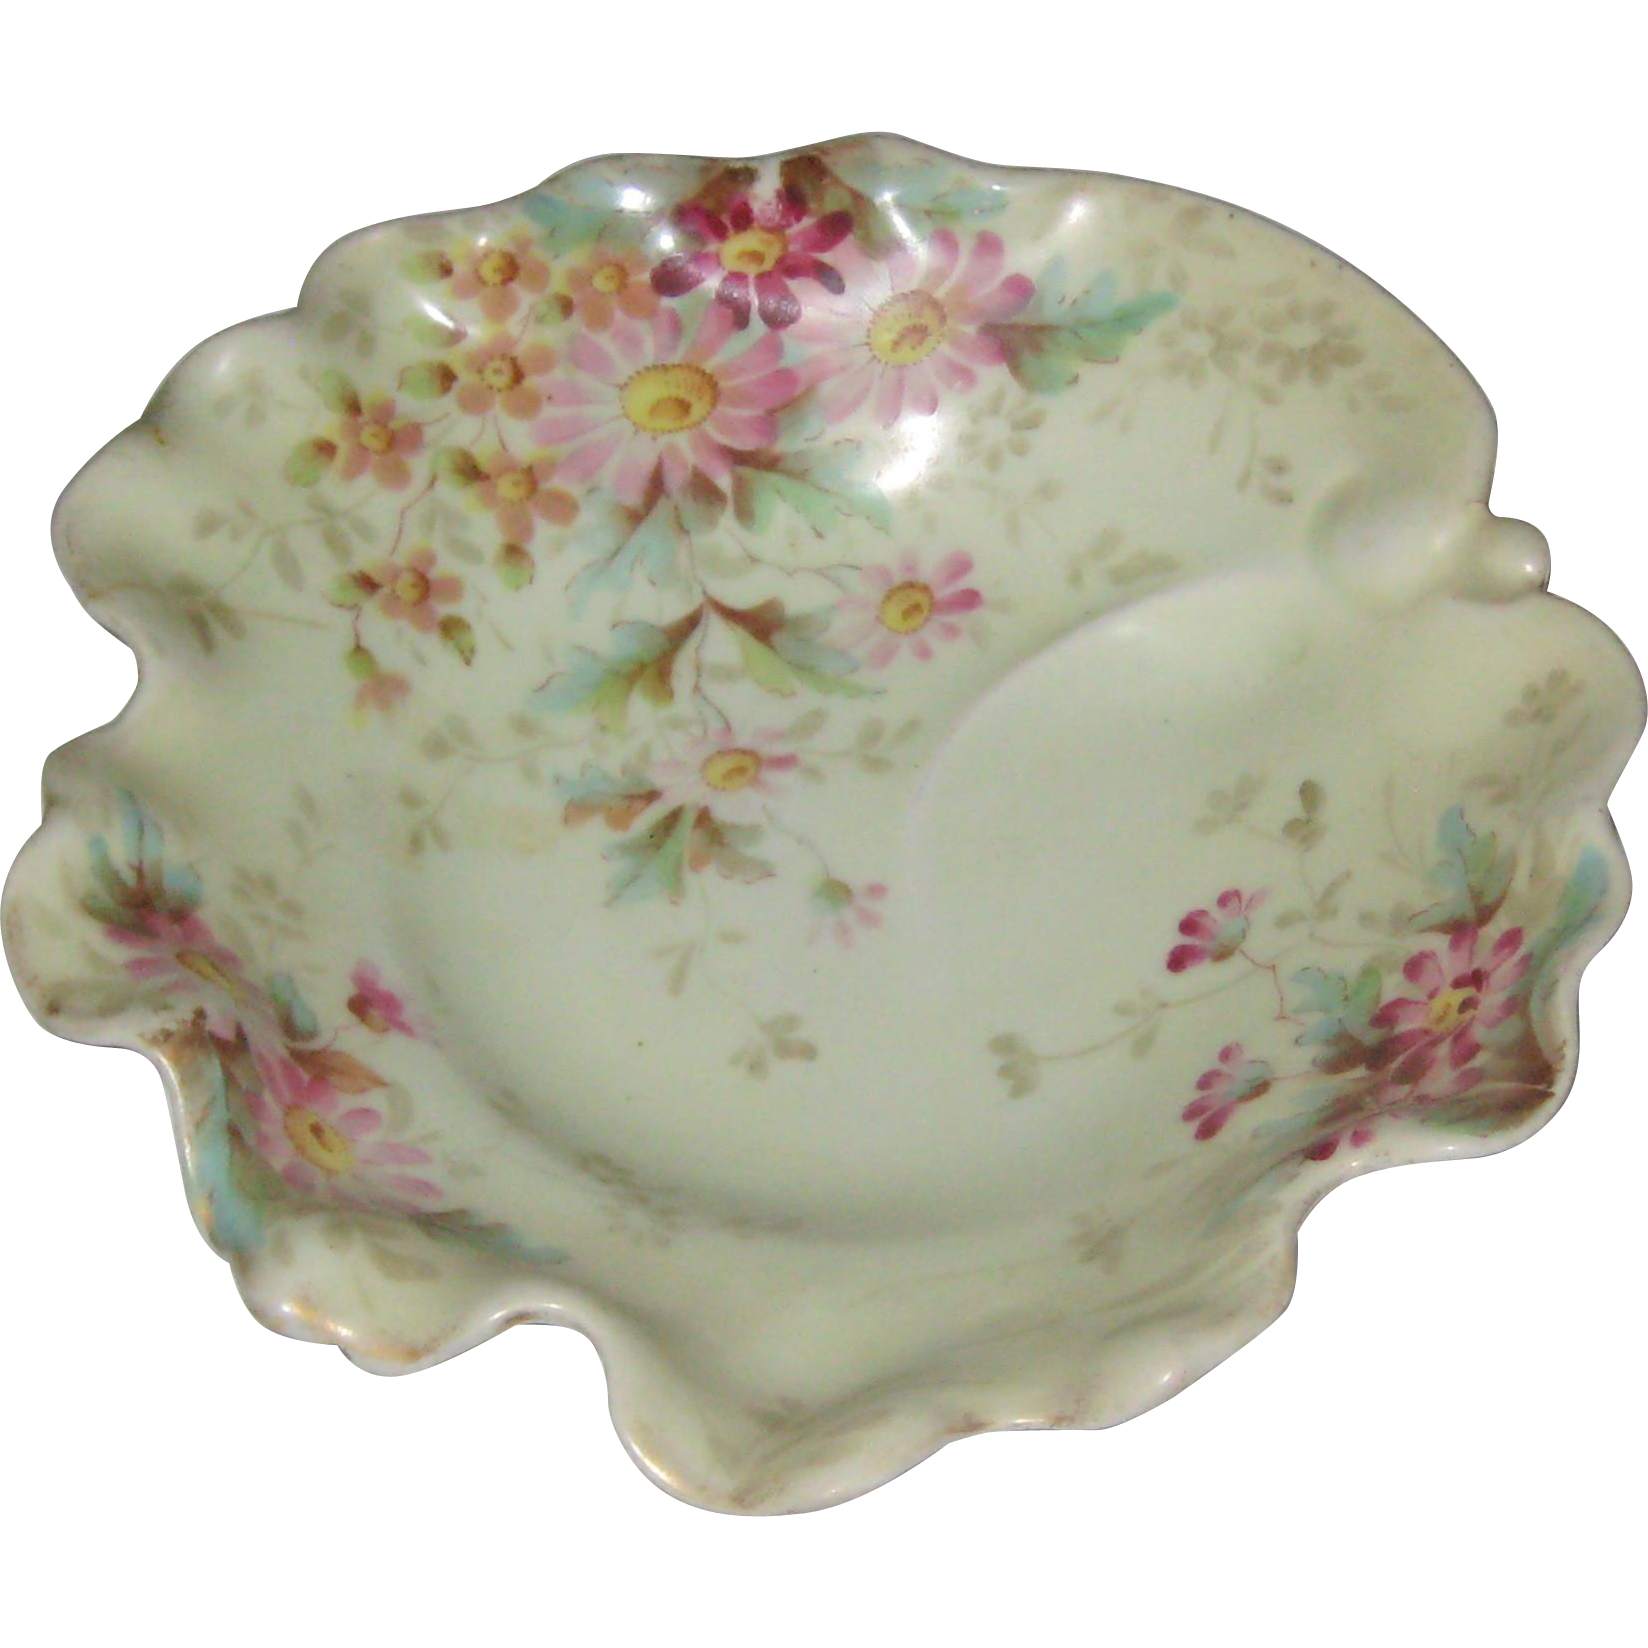 Porcelain Nappie or Serving Dish with Hand Painted Pink Daisies